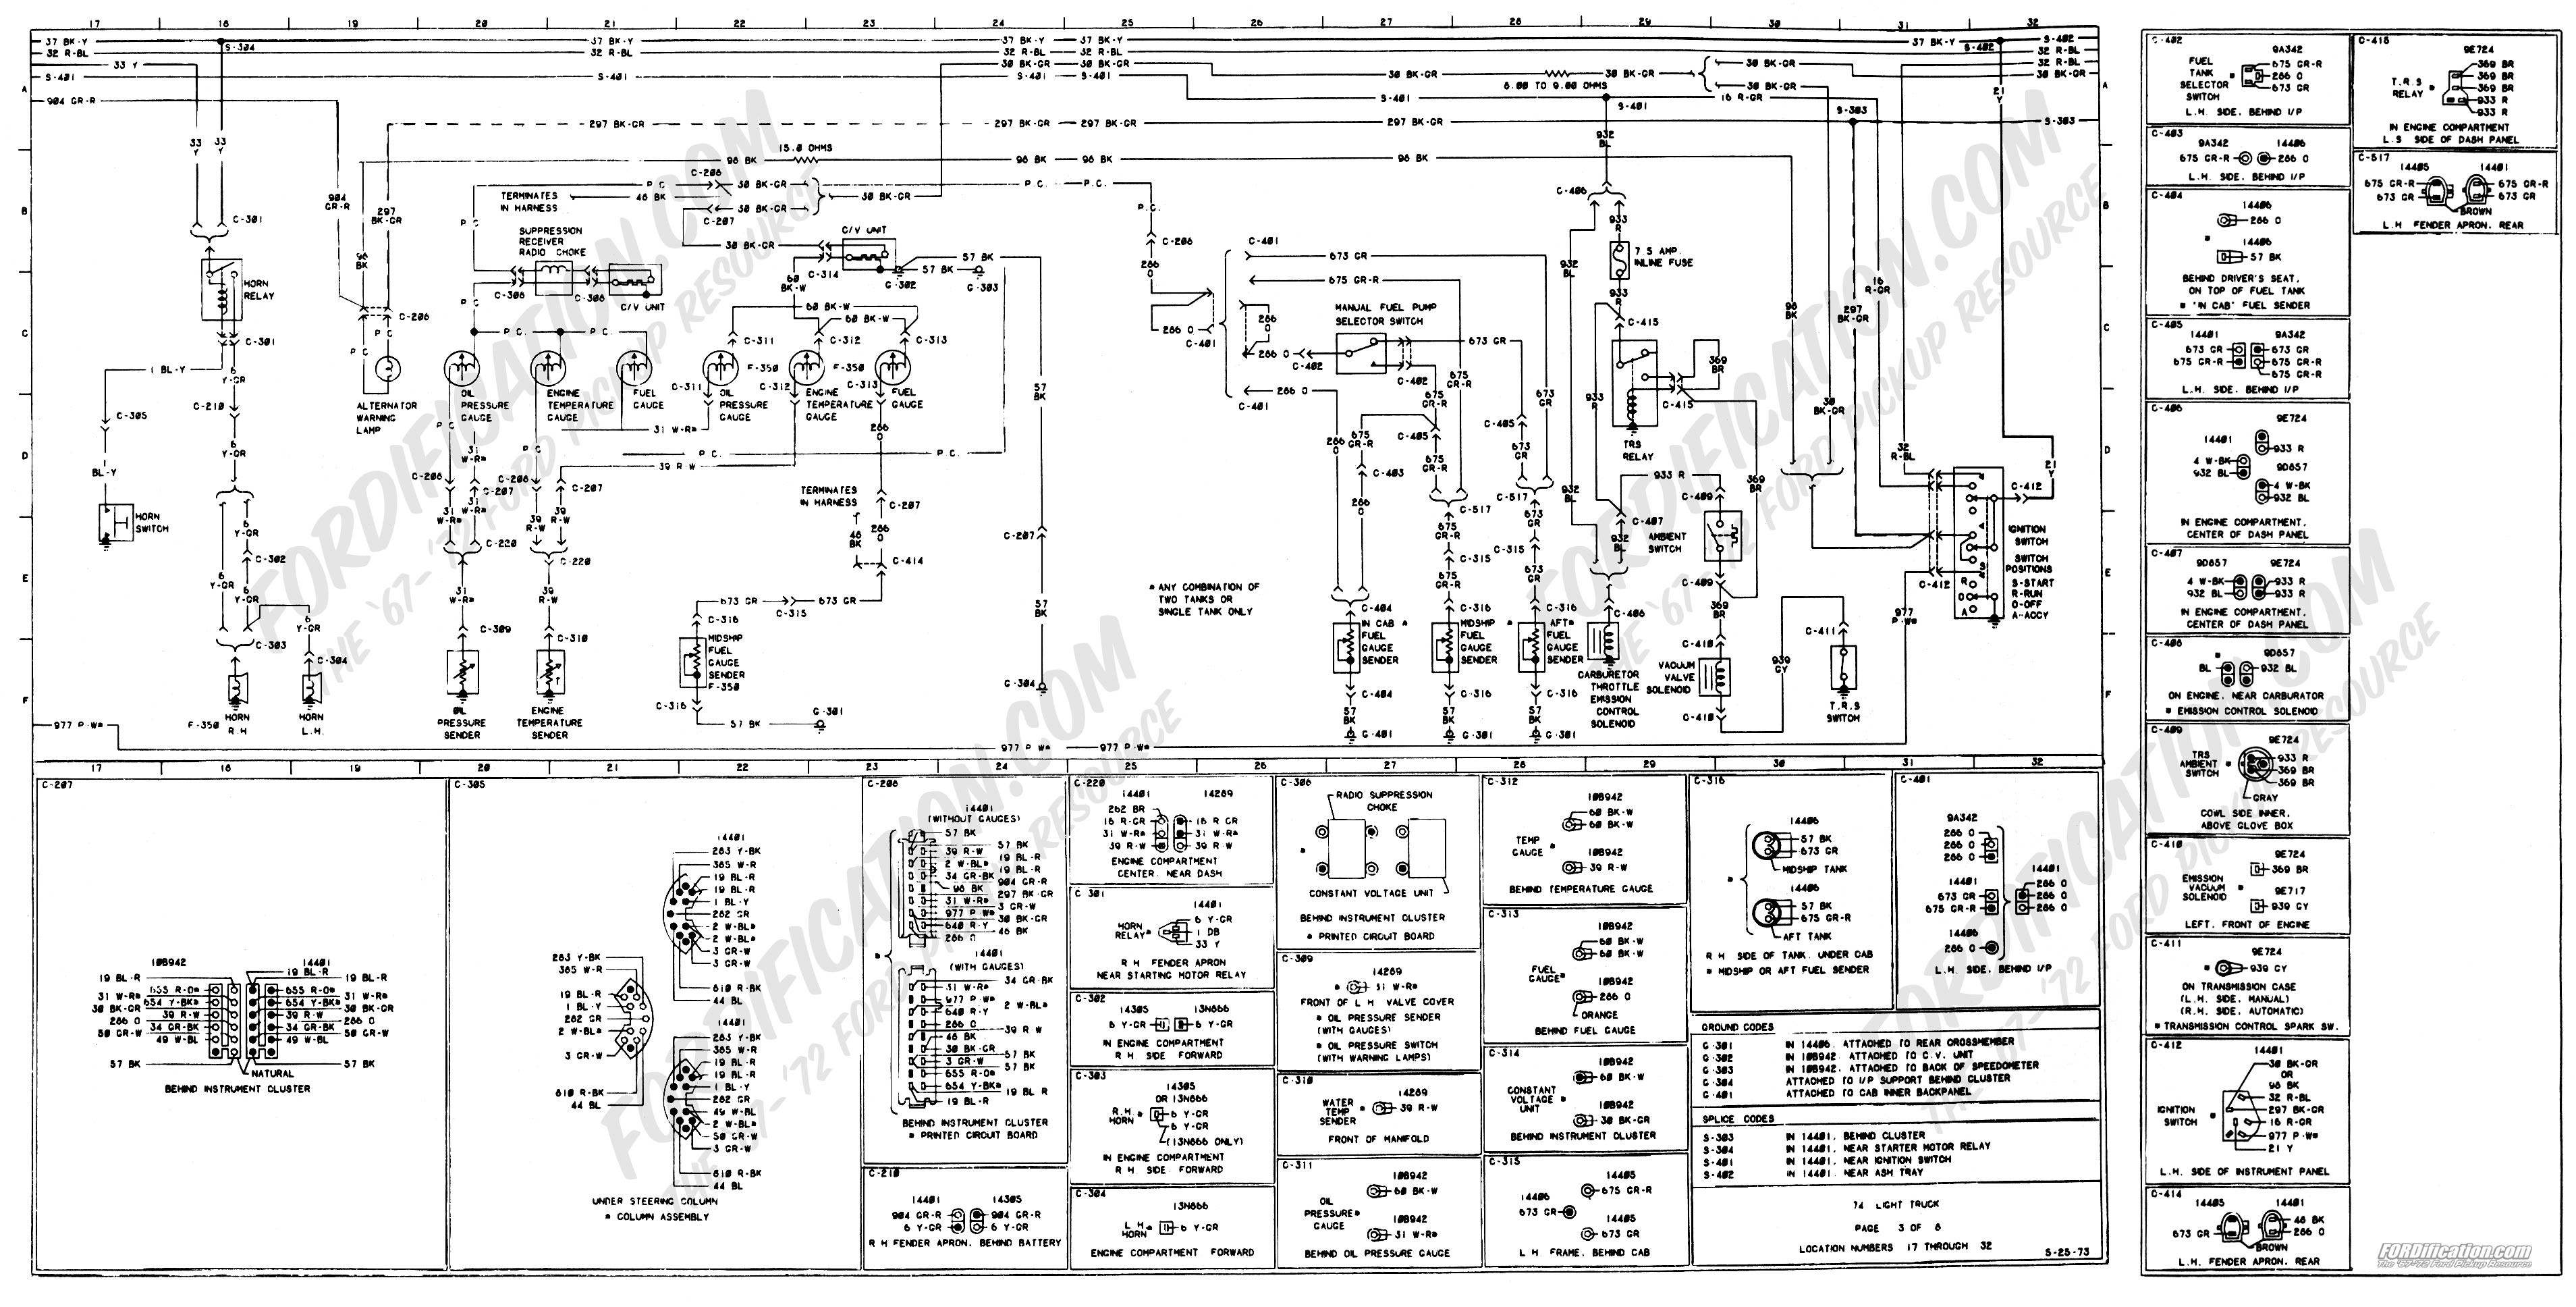 2003 Sterling Wiring Schematic. sterling acterra truck